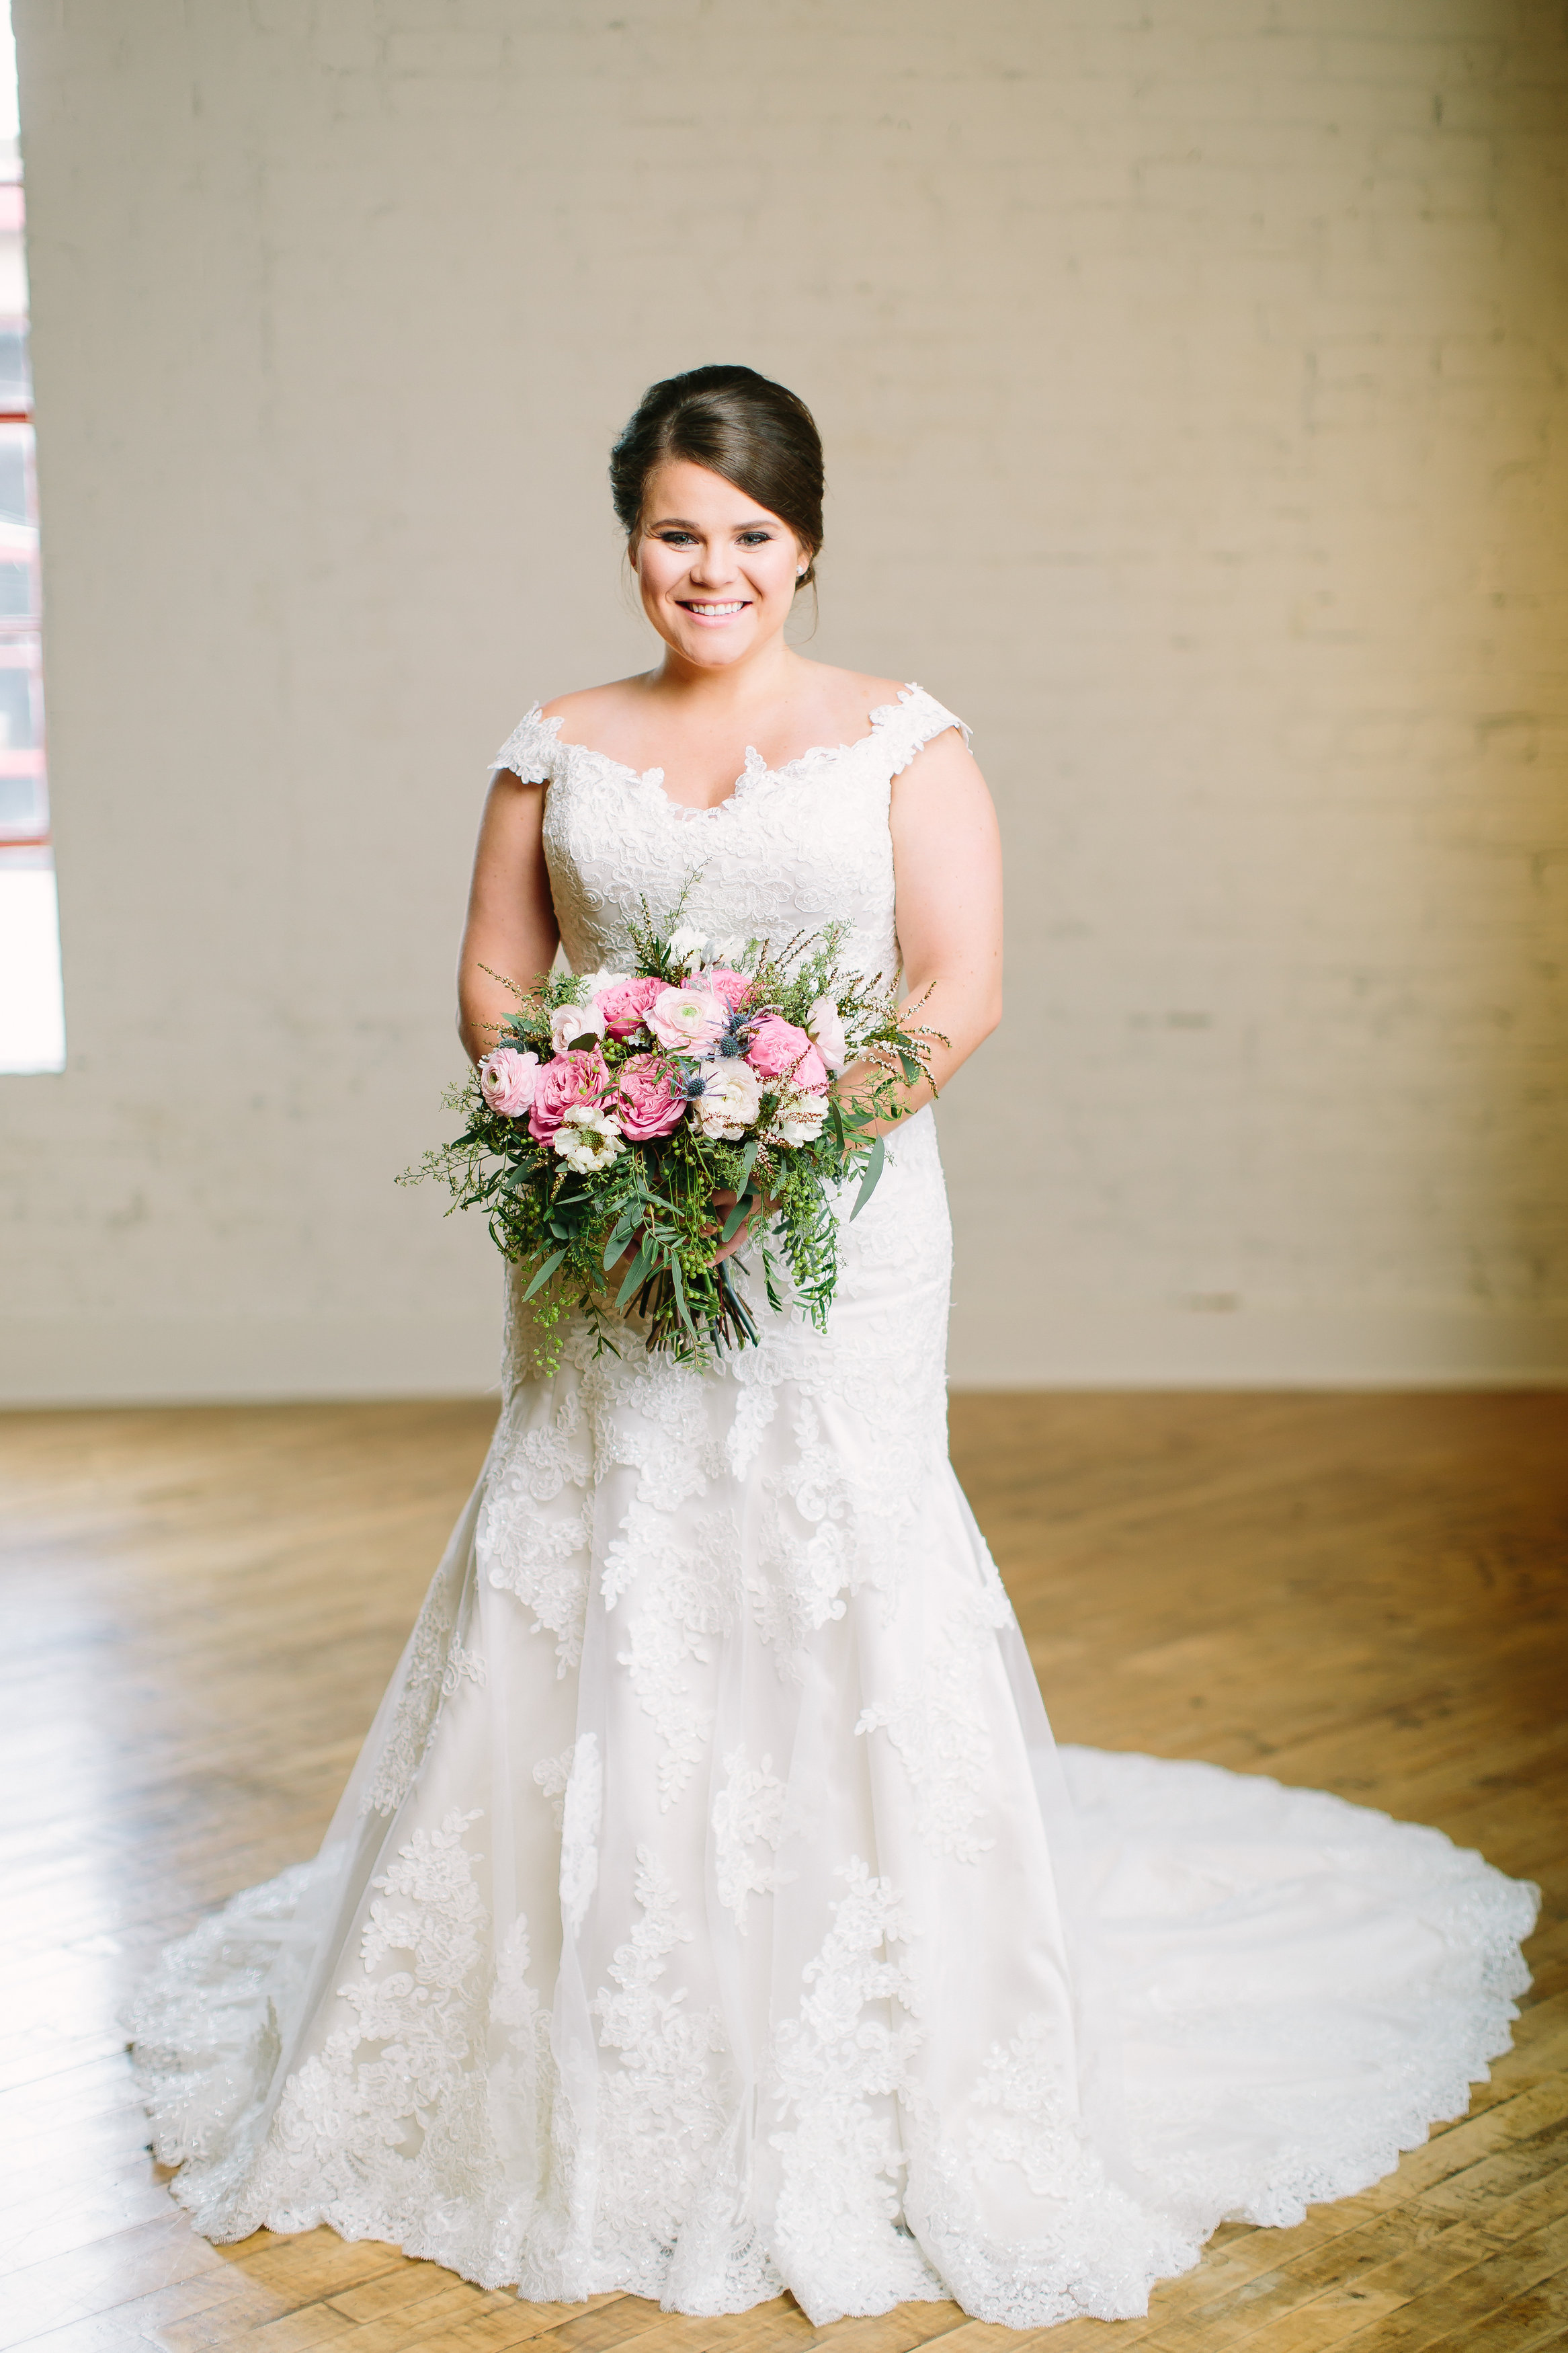 Nashville Bridal Portrait // Lush Bride's Bouquet